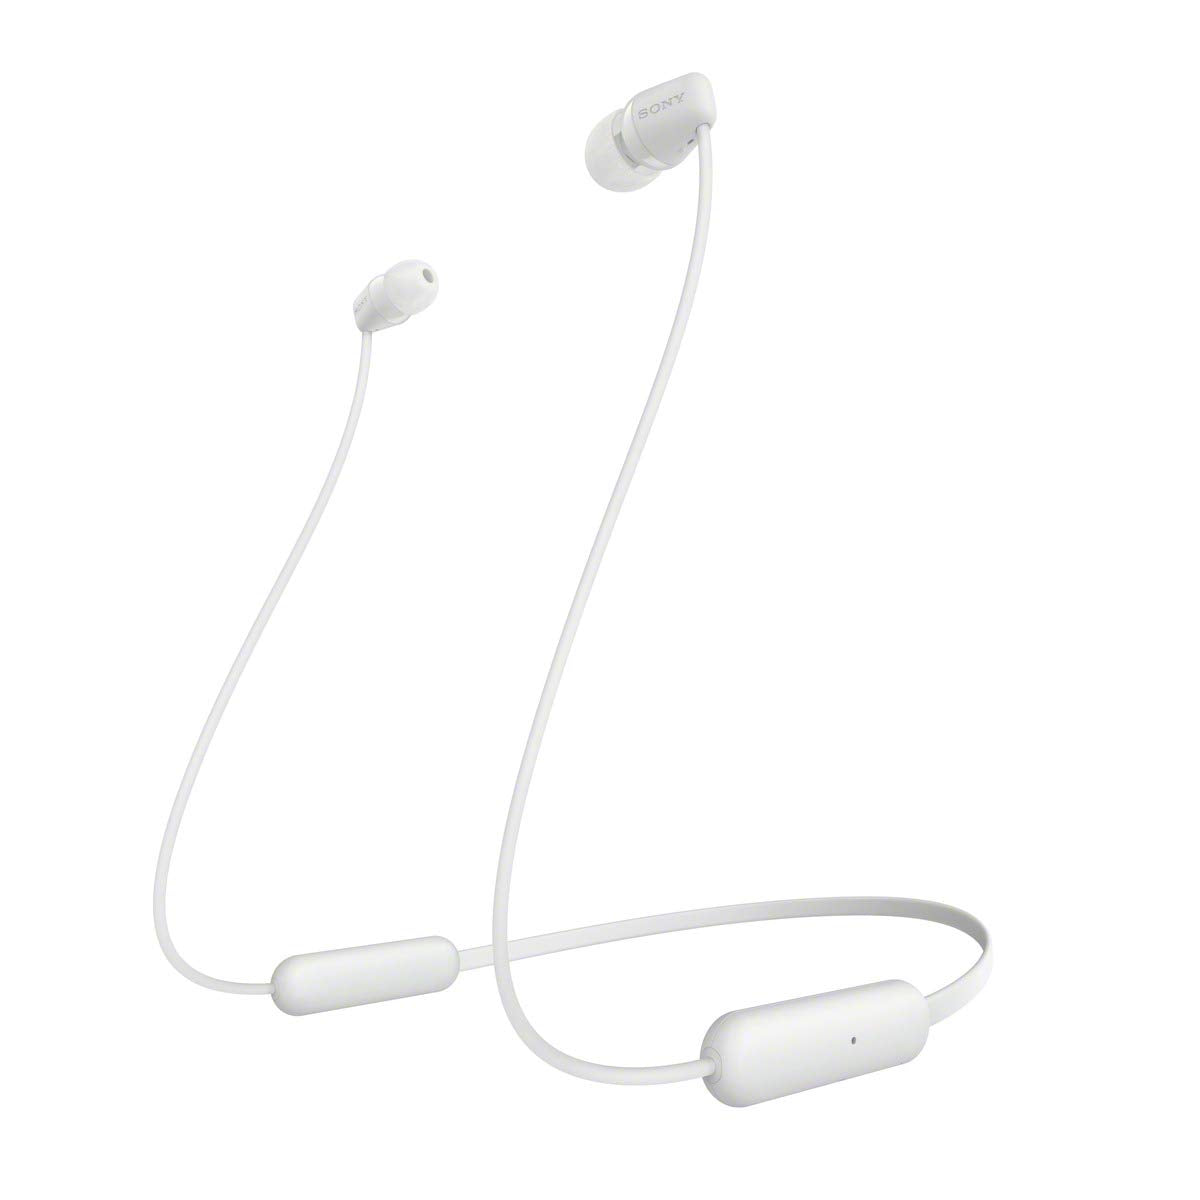 SONY WI-C200 Wireless Bluetooth Earphones - White [Accessories]